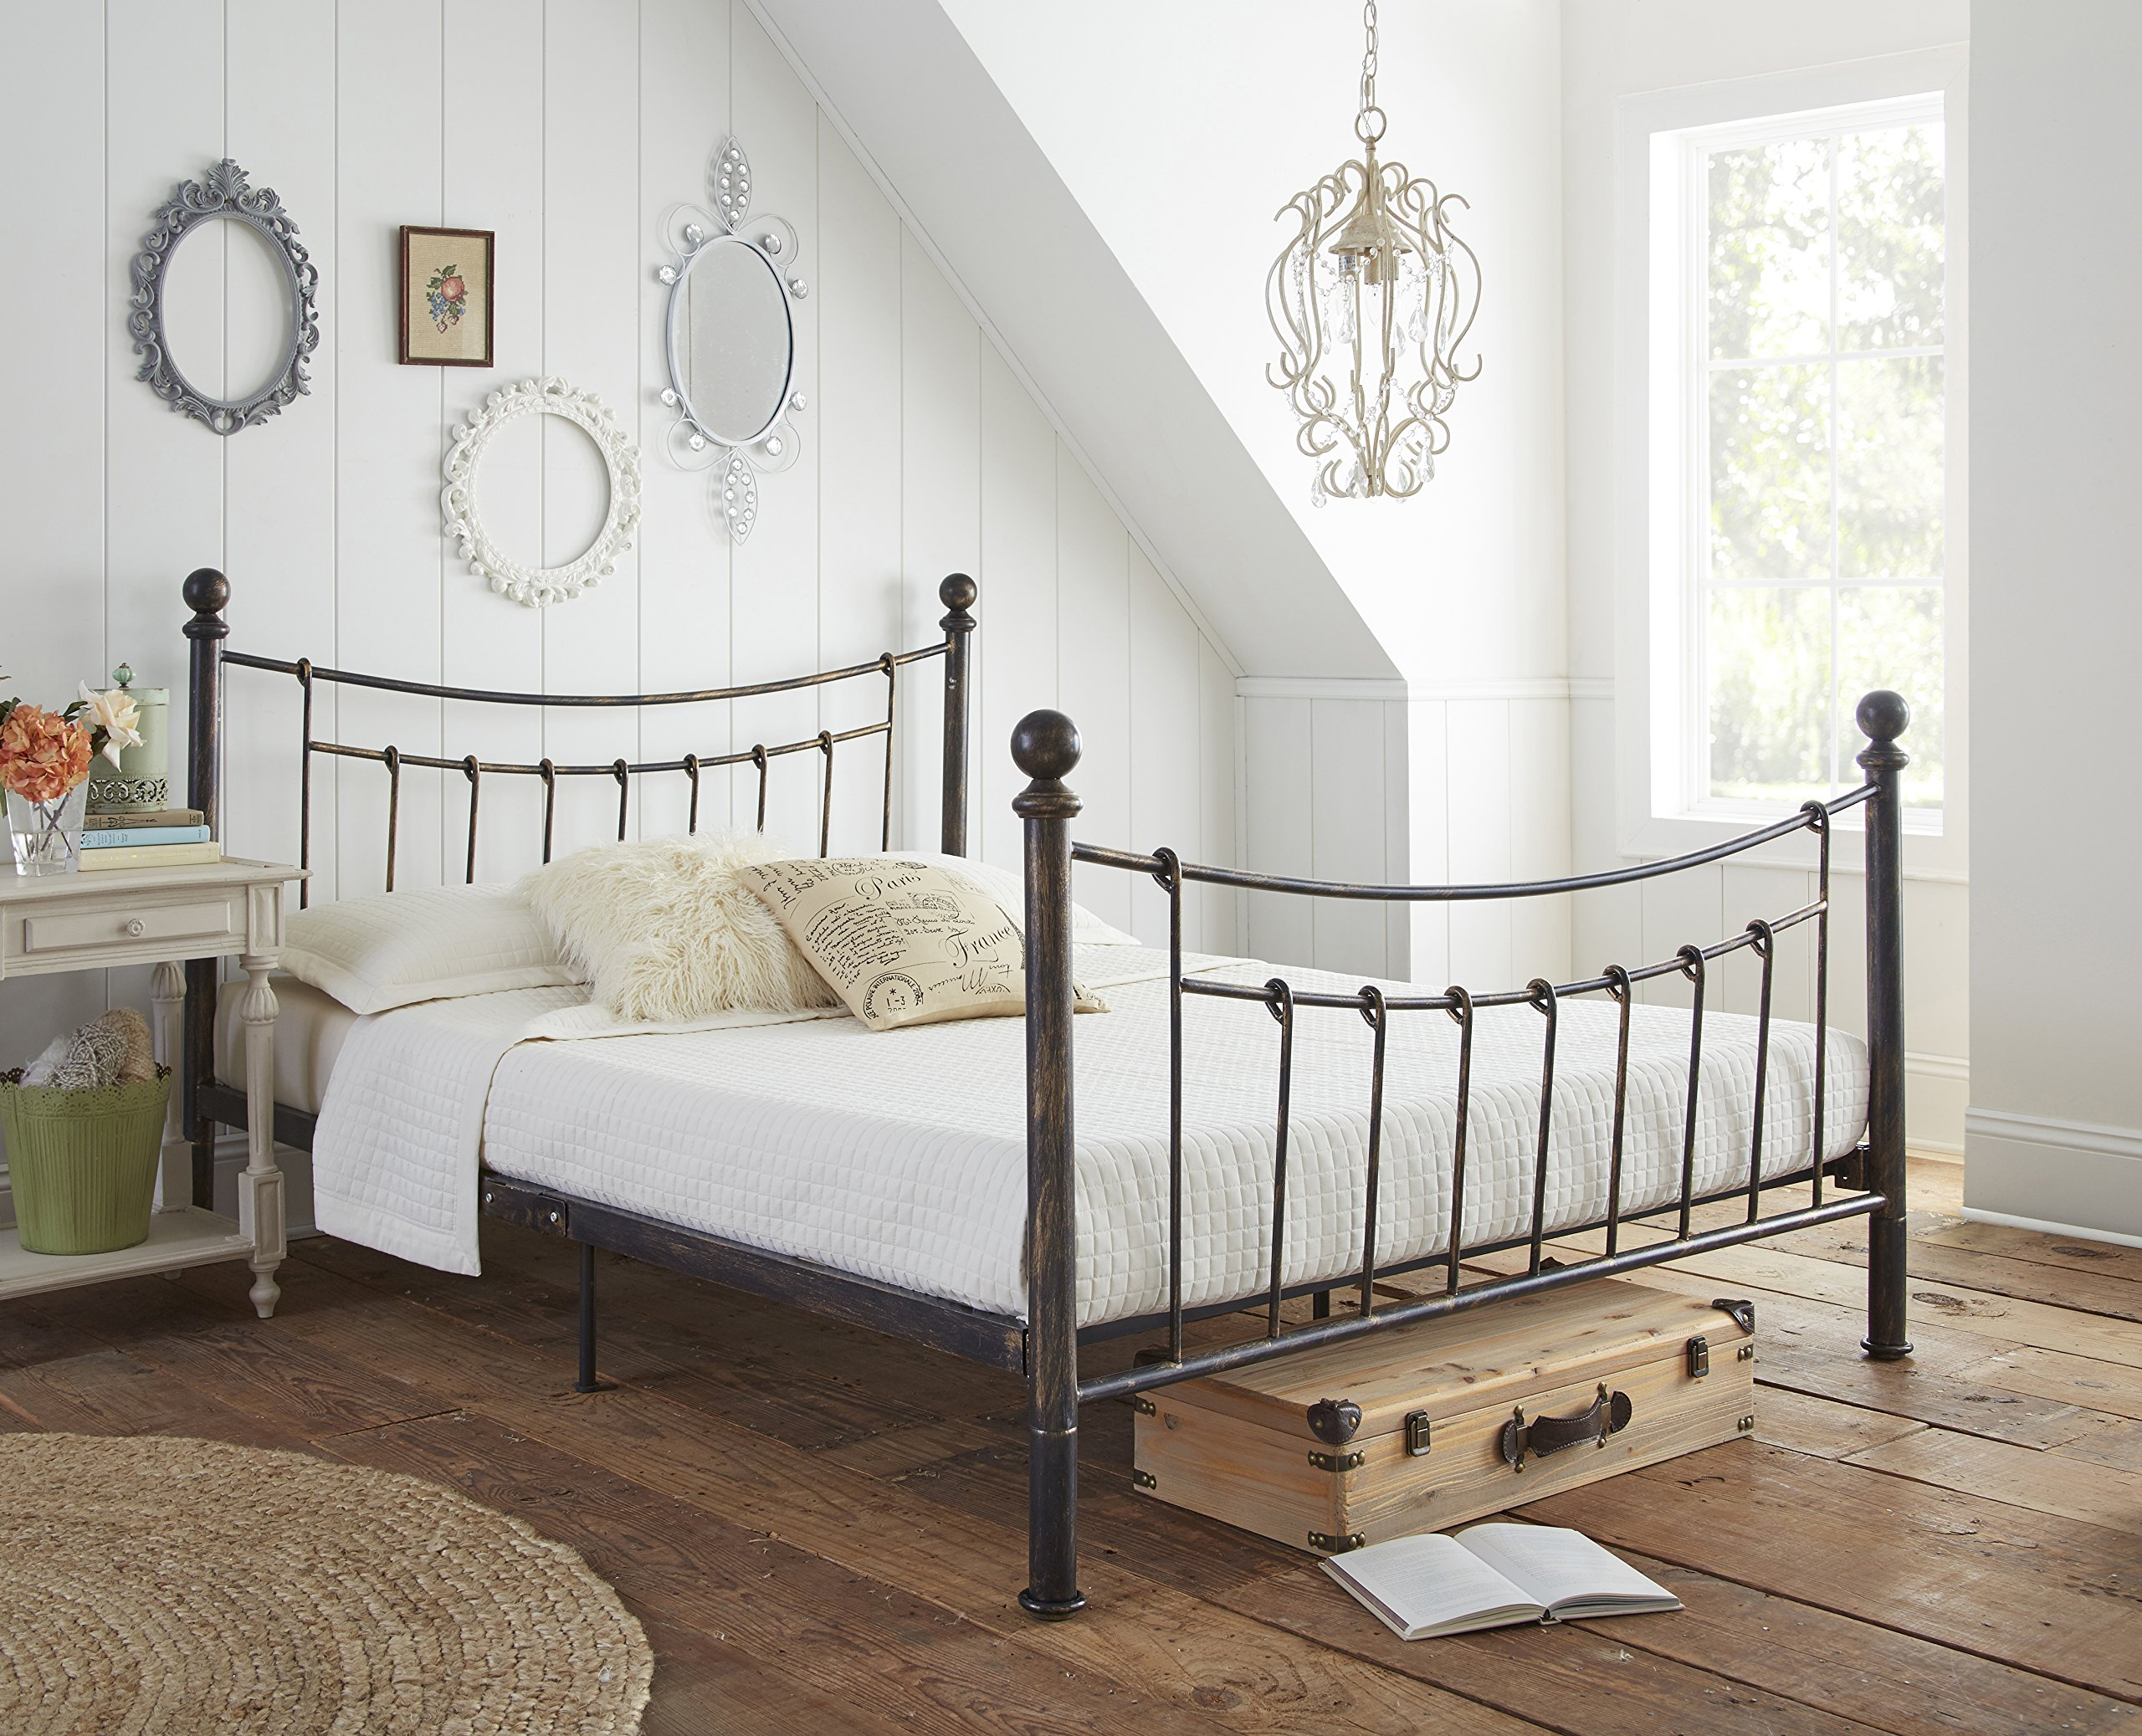 Flex Form Rowan Metal Platform Bed Frame / Mattress Foundation with Headboard and Footboard, Queen by Flex Form (Image #3)